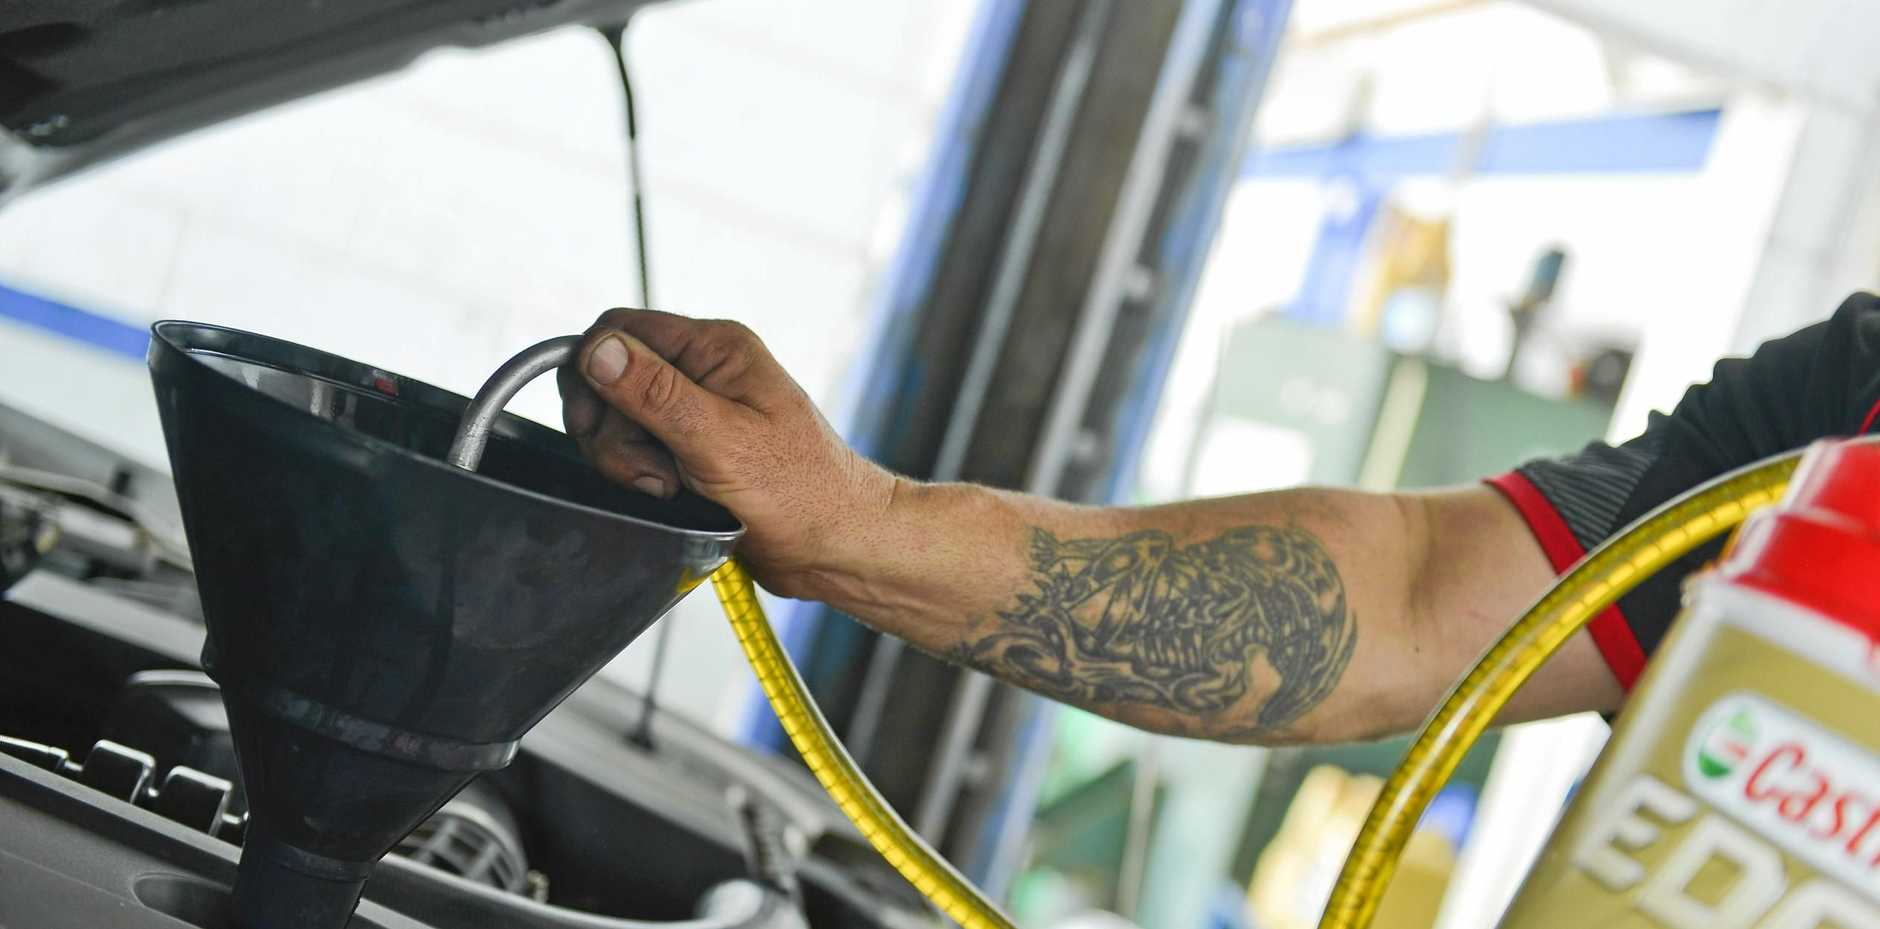 Readers have made more than 800 nominations for the best mechanic in Mackay.